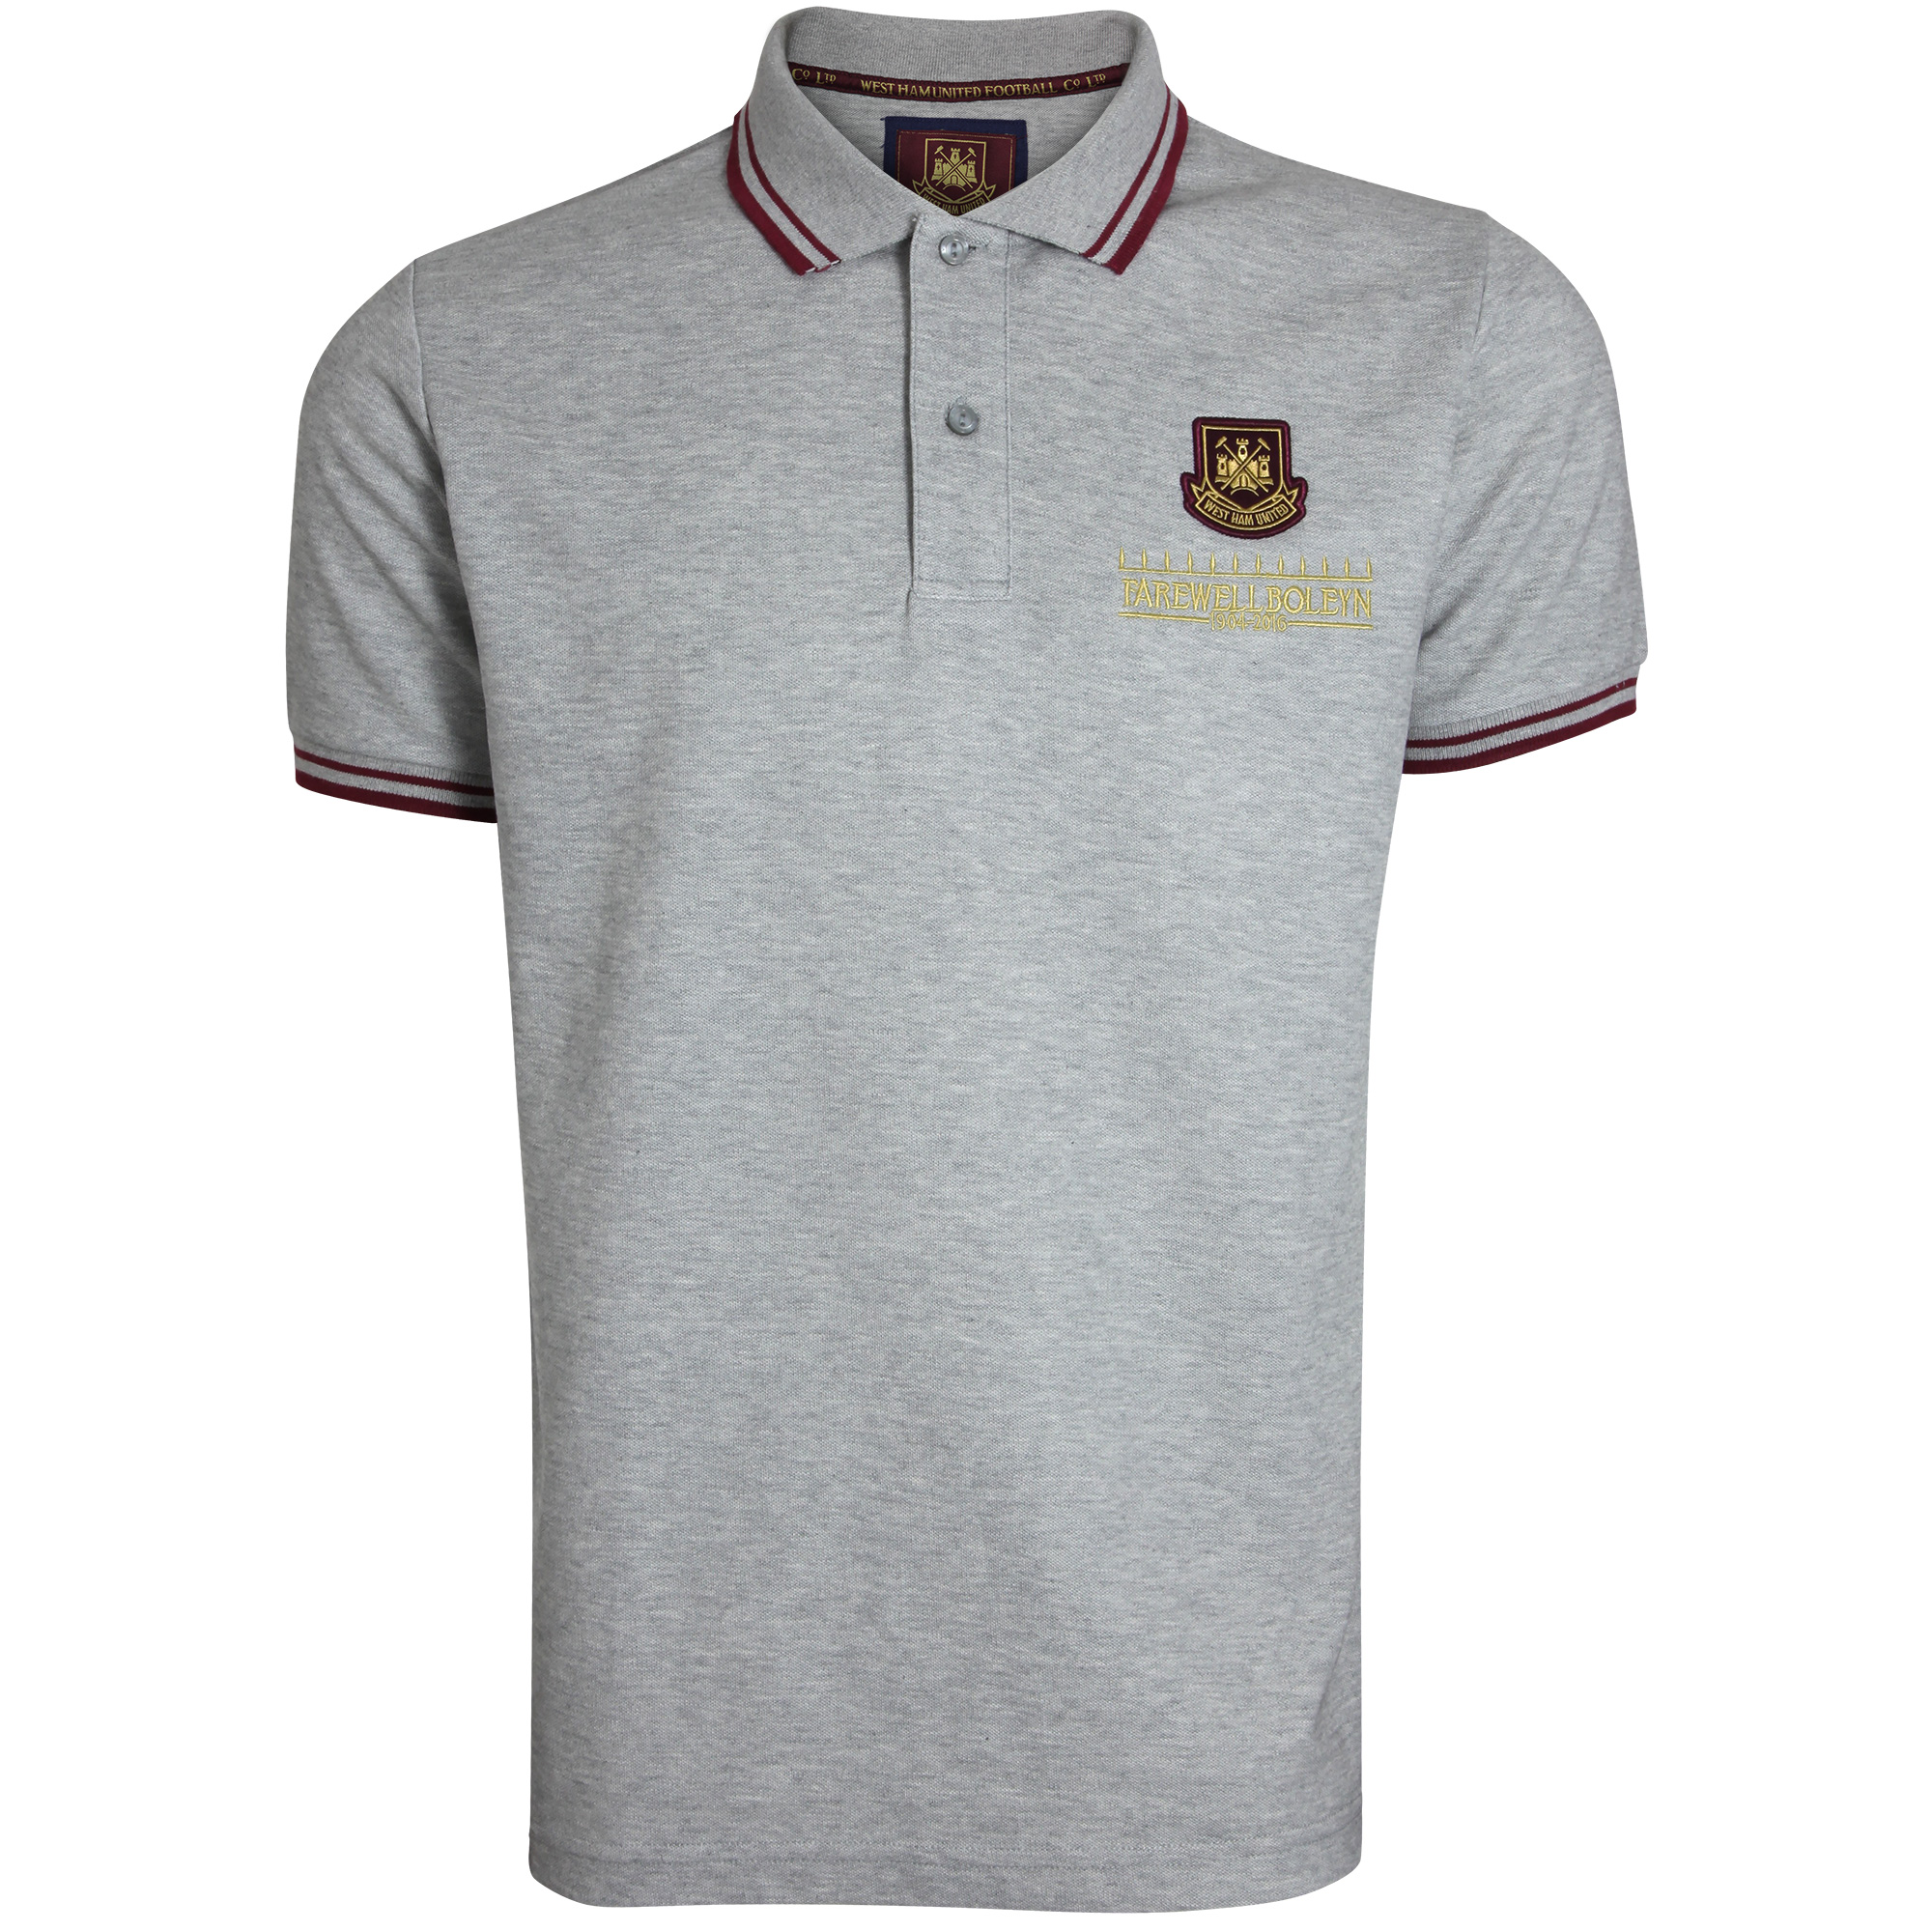 FAREWELL BOLEYN - ADULT GREY MARL TIPPED POLO